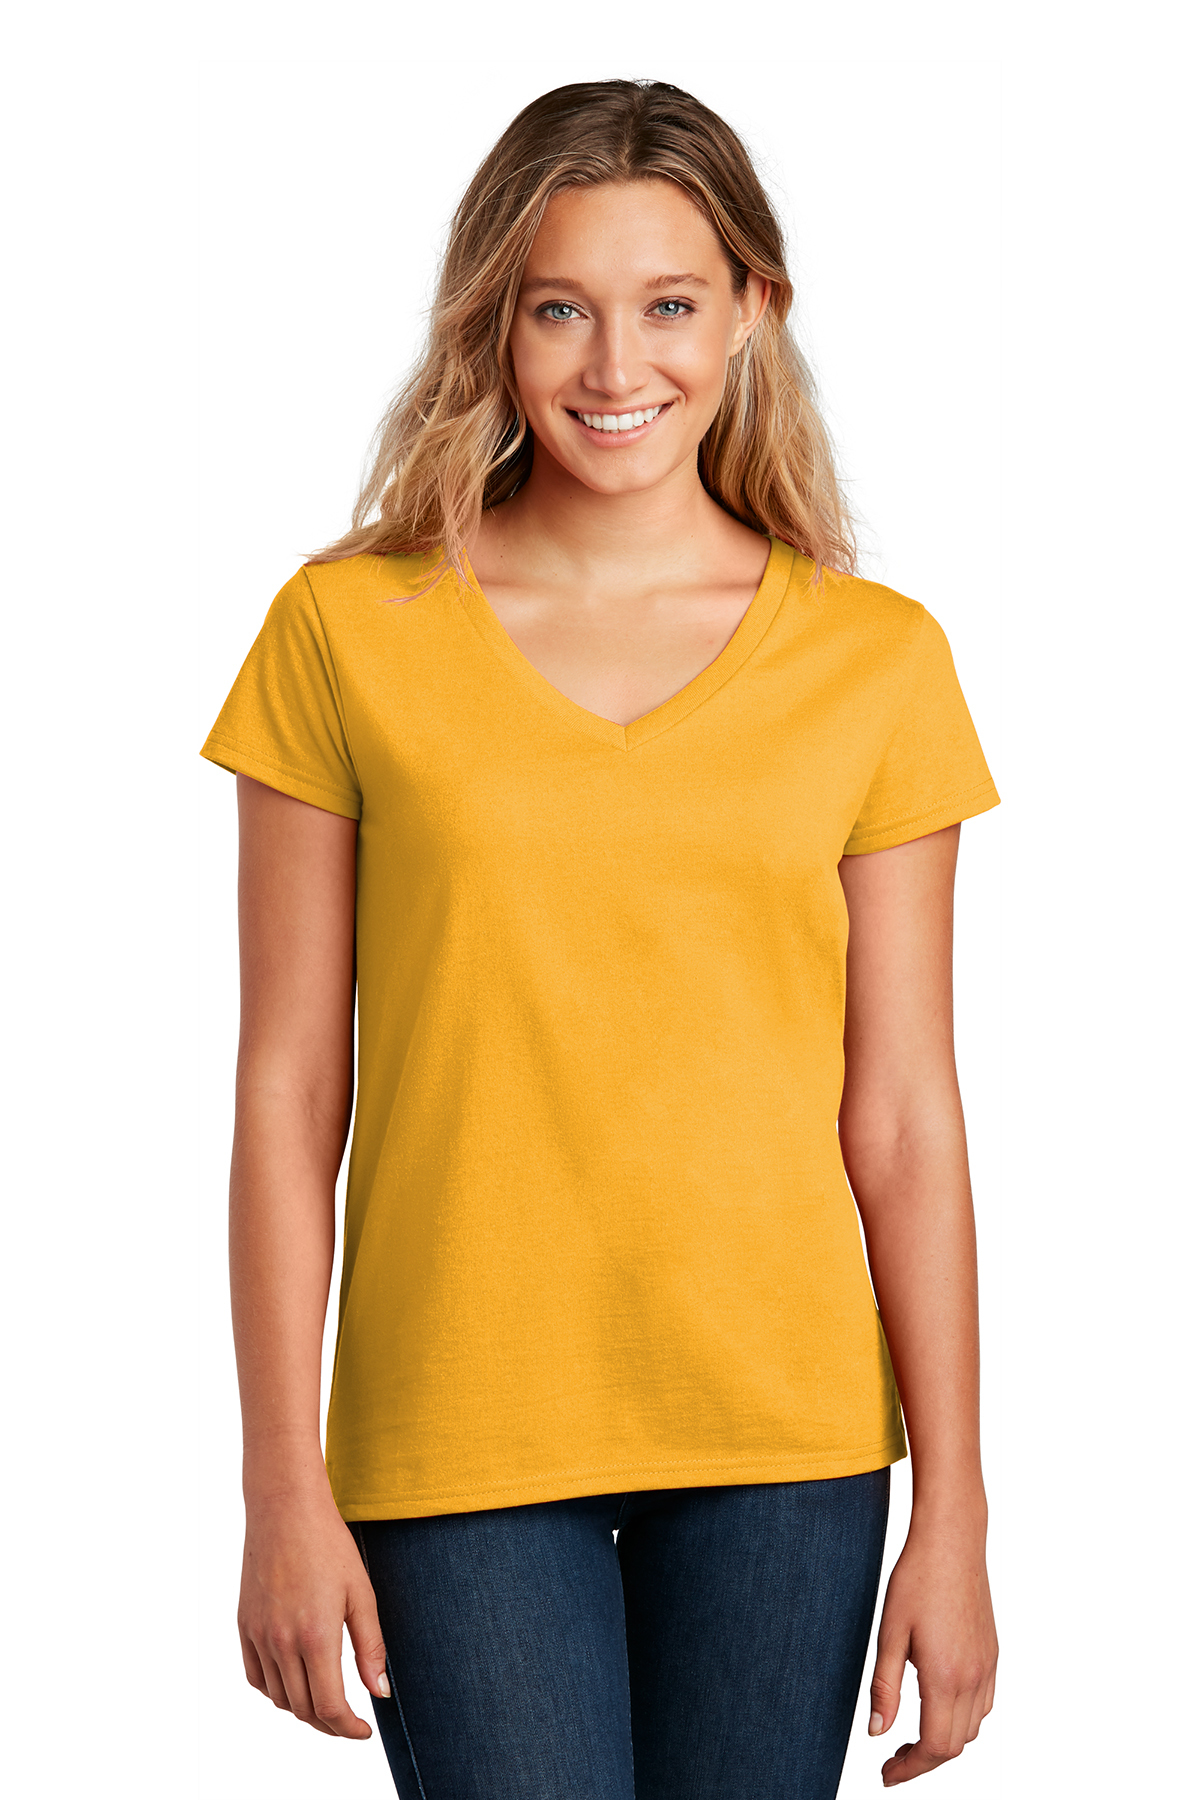 District ® DT8001 - Women's Re-Tee ™ V-Neck